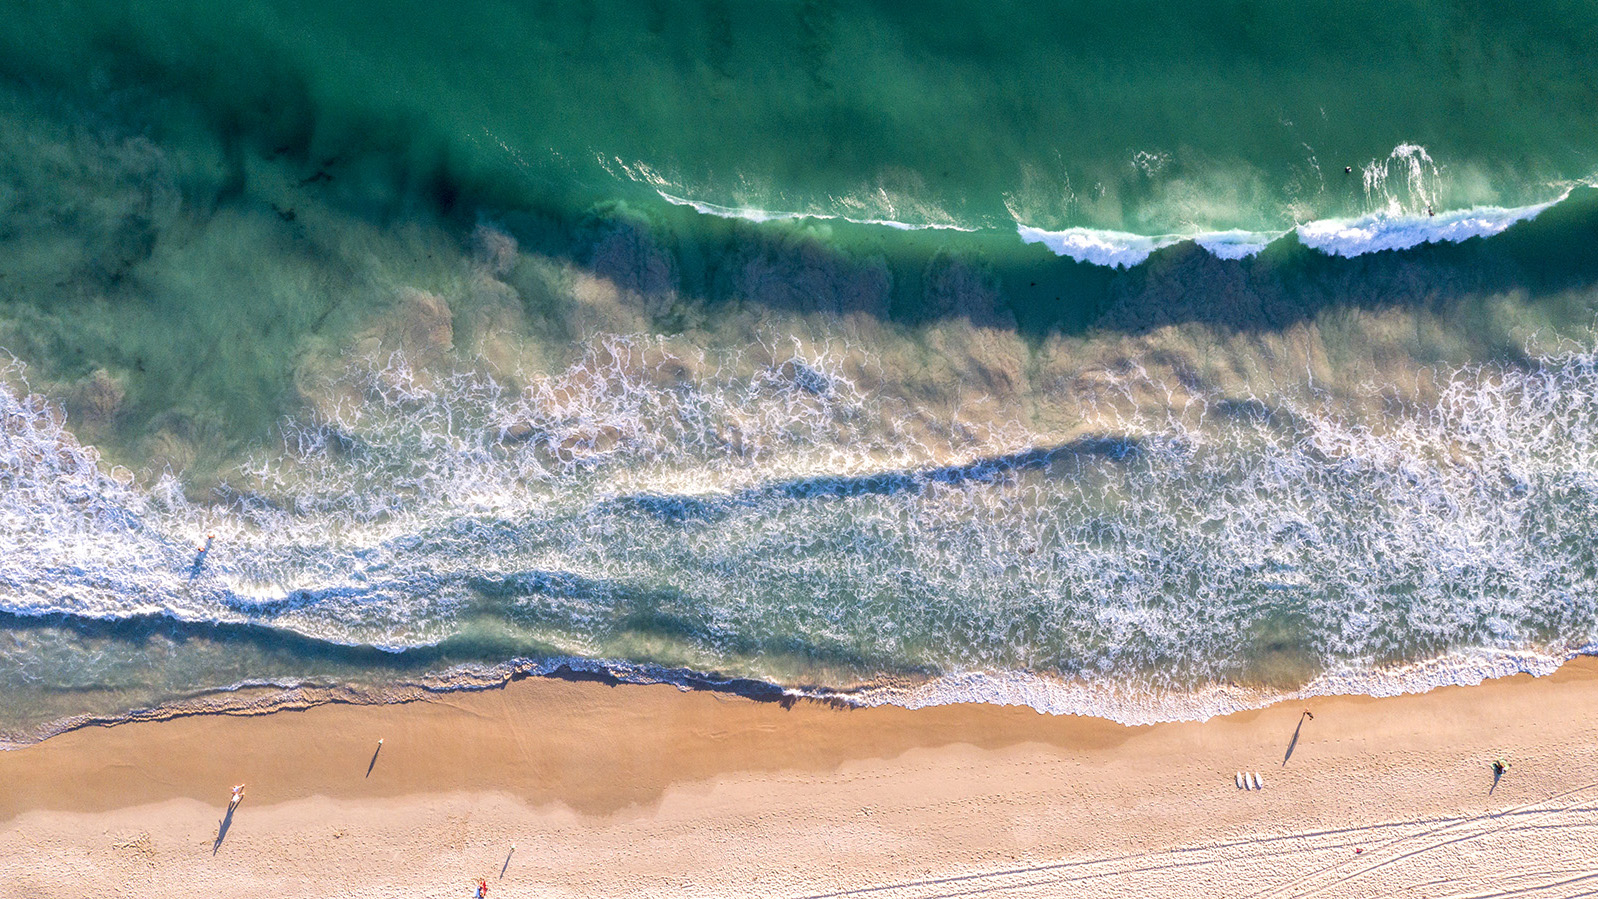 080 - Jason Mazur - 'Scarborough Beach Aerial'